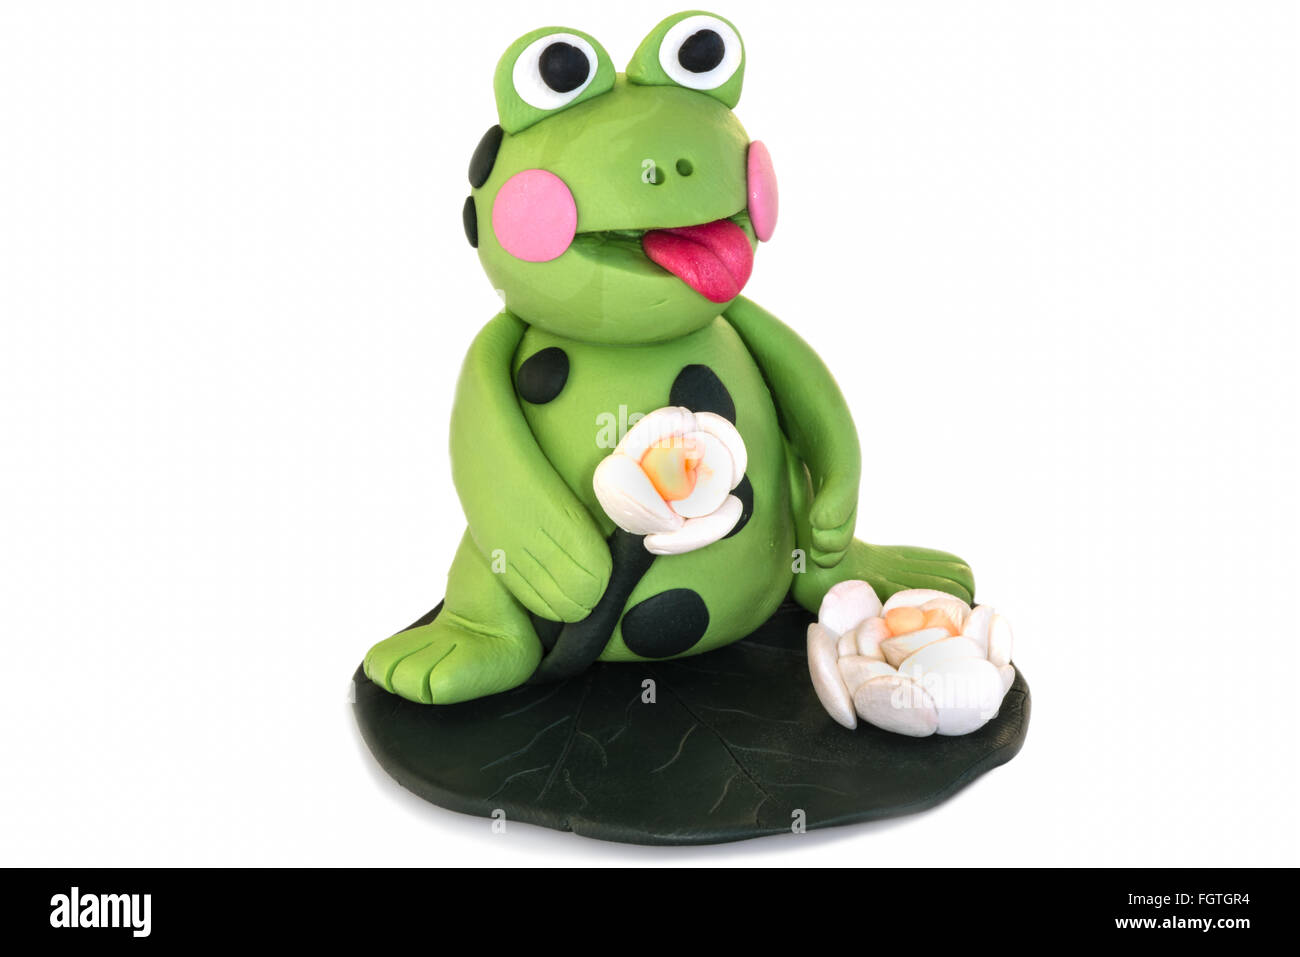 Frog figurine made of polymer clay on a white background . - Stock Image